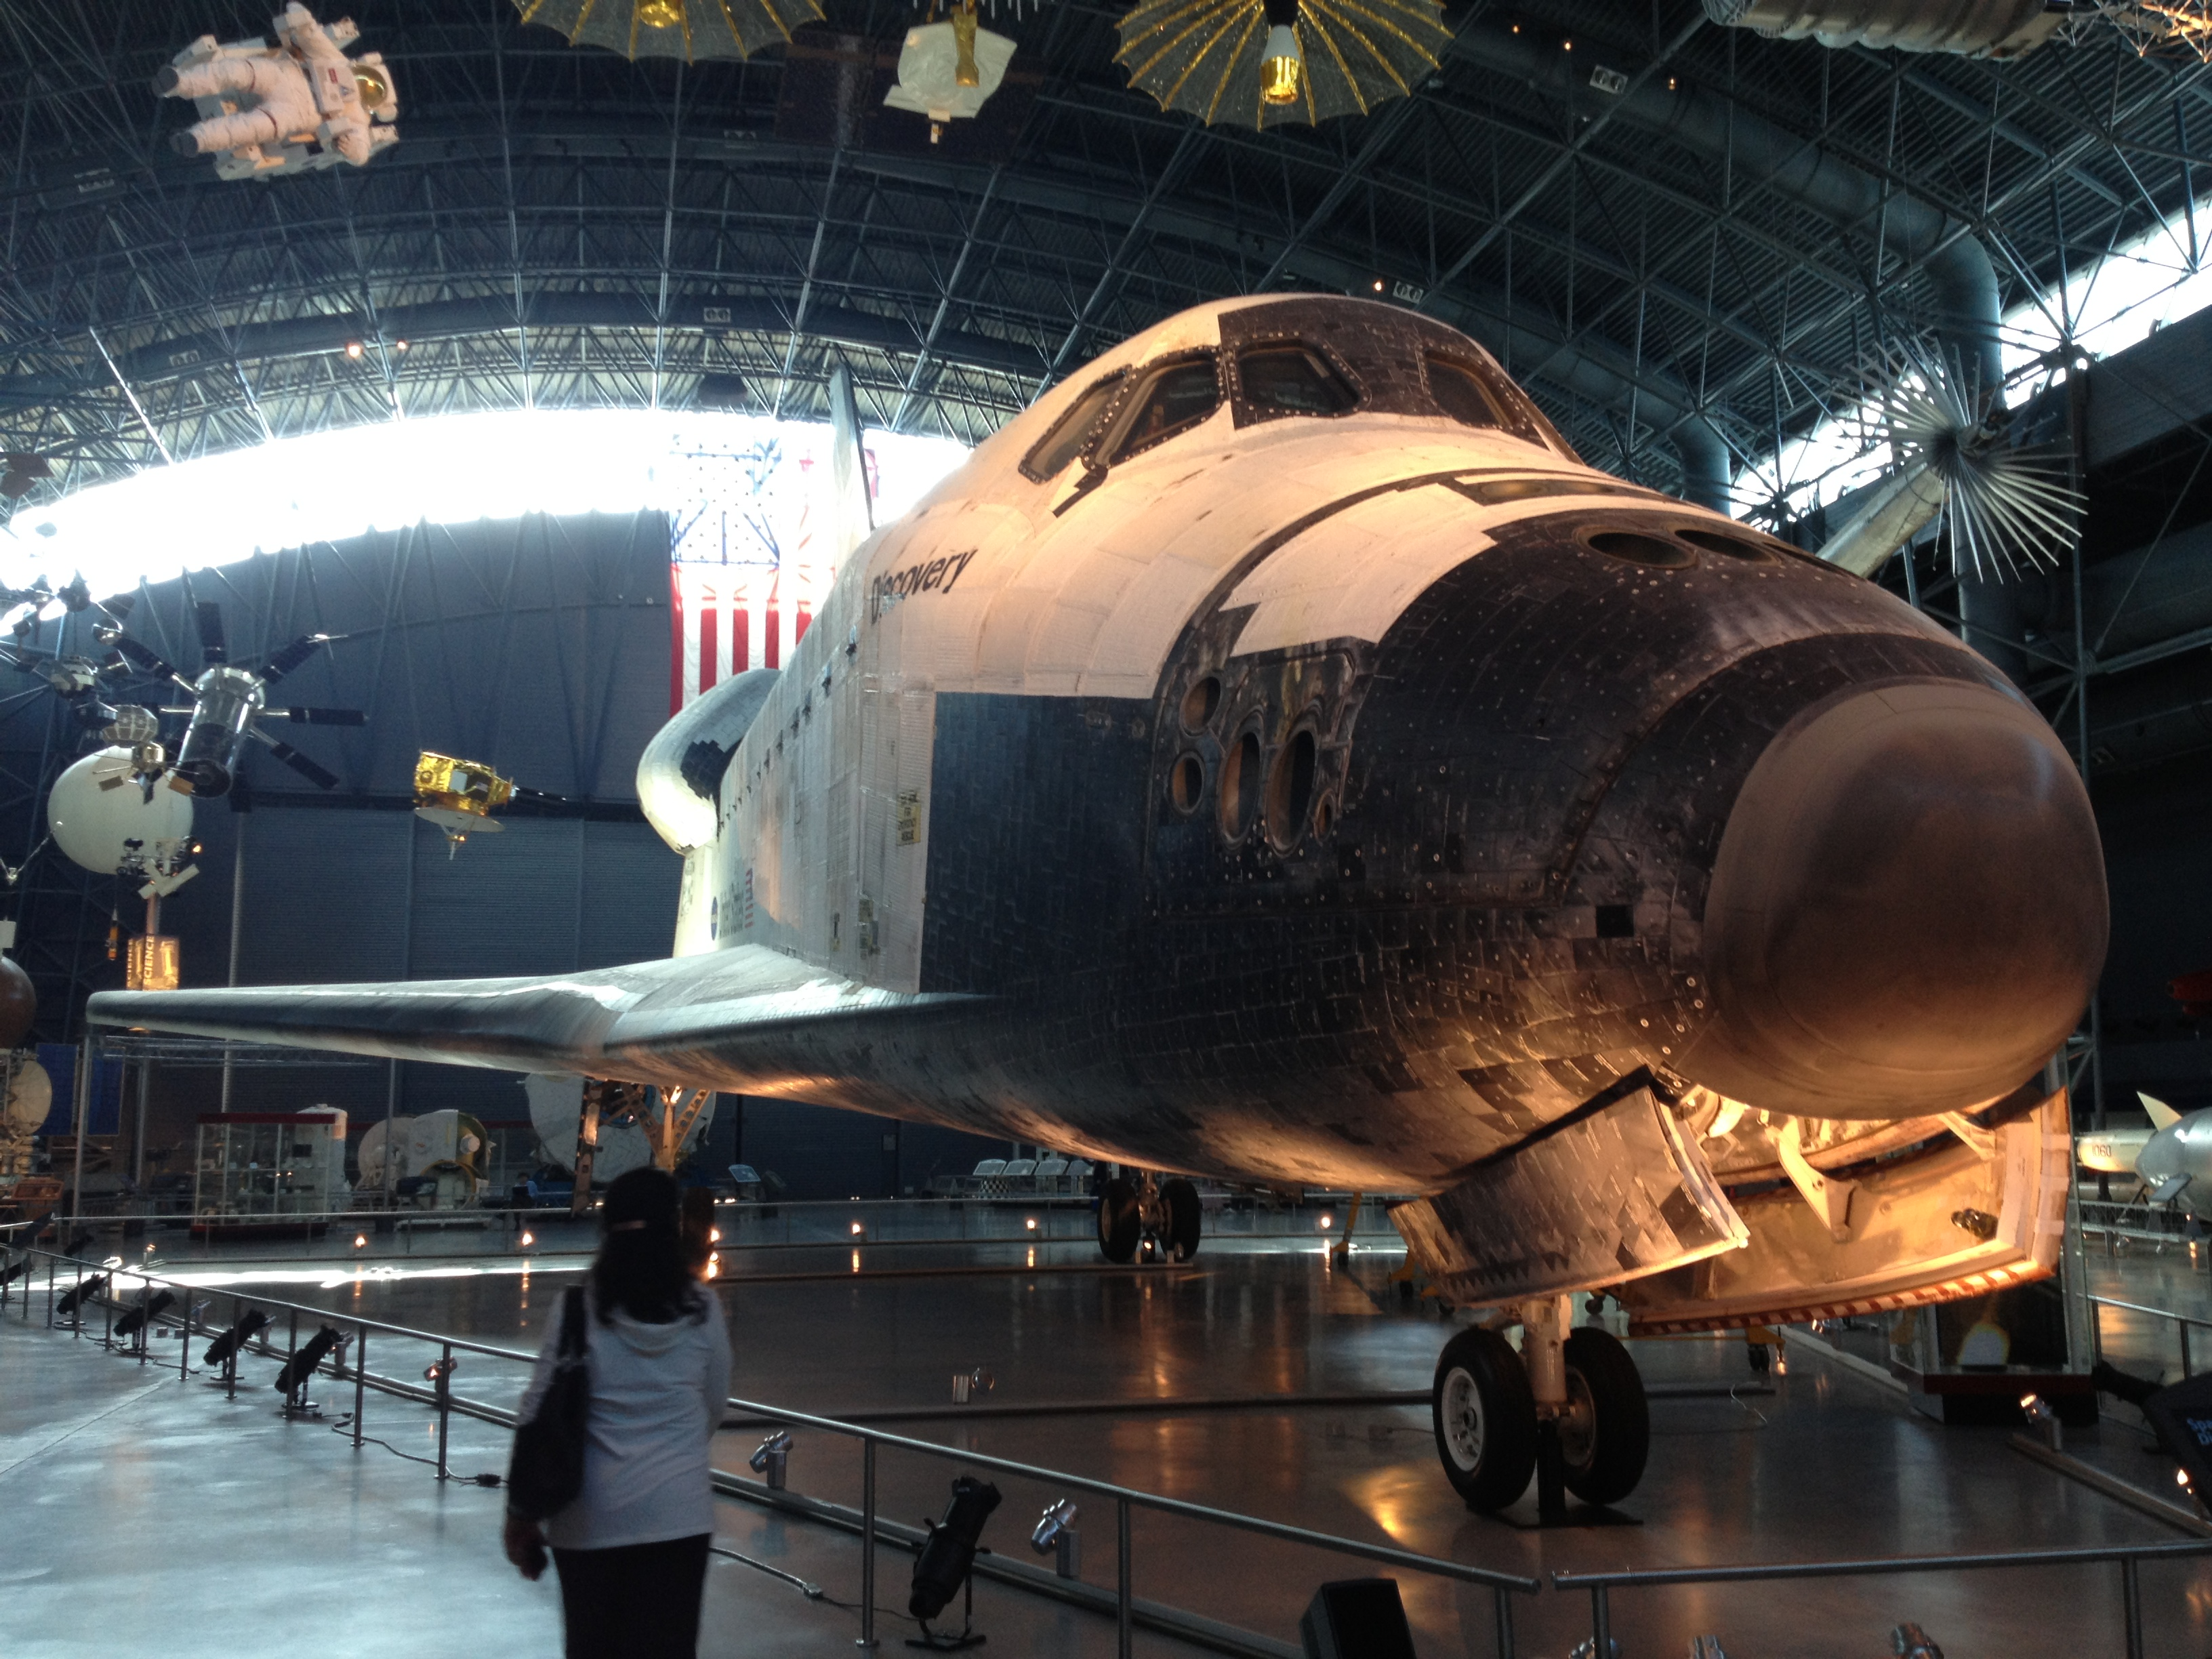 space shuttle discovery - photo #26